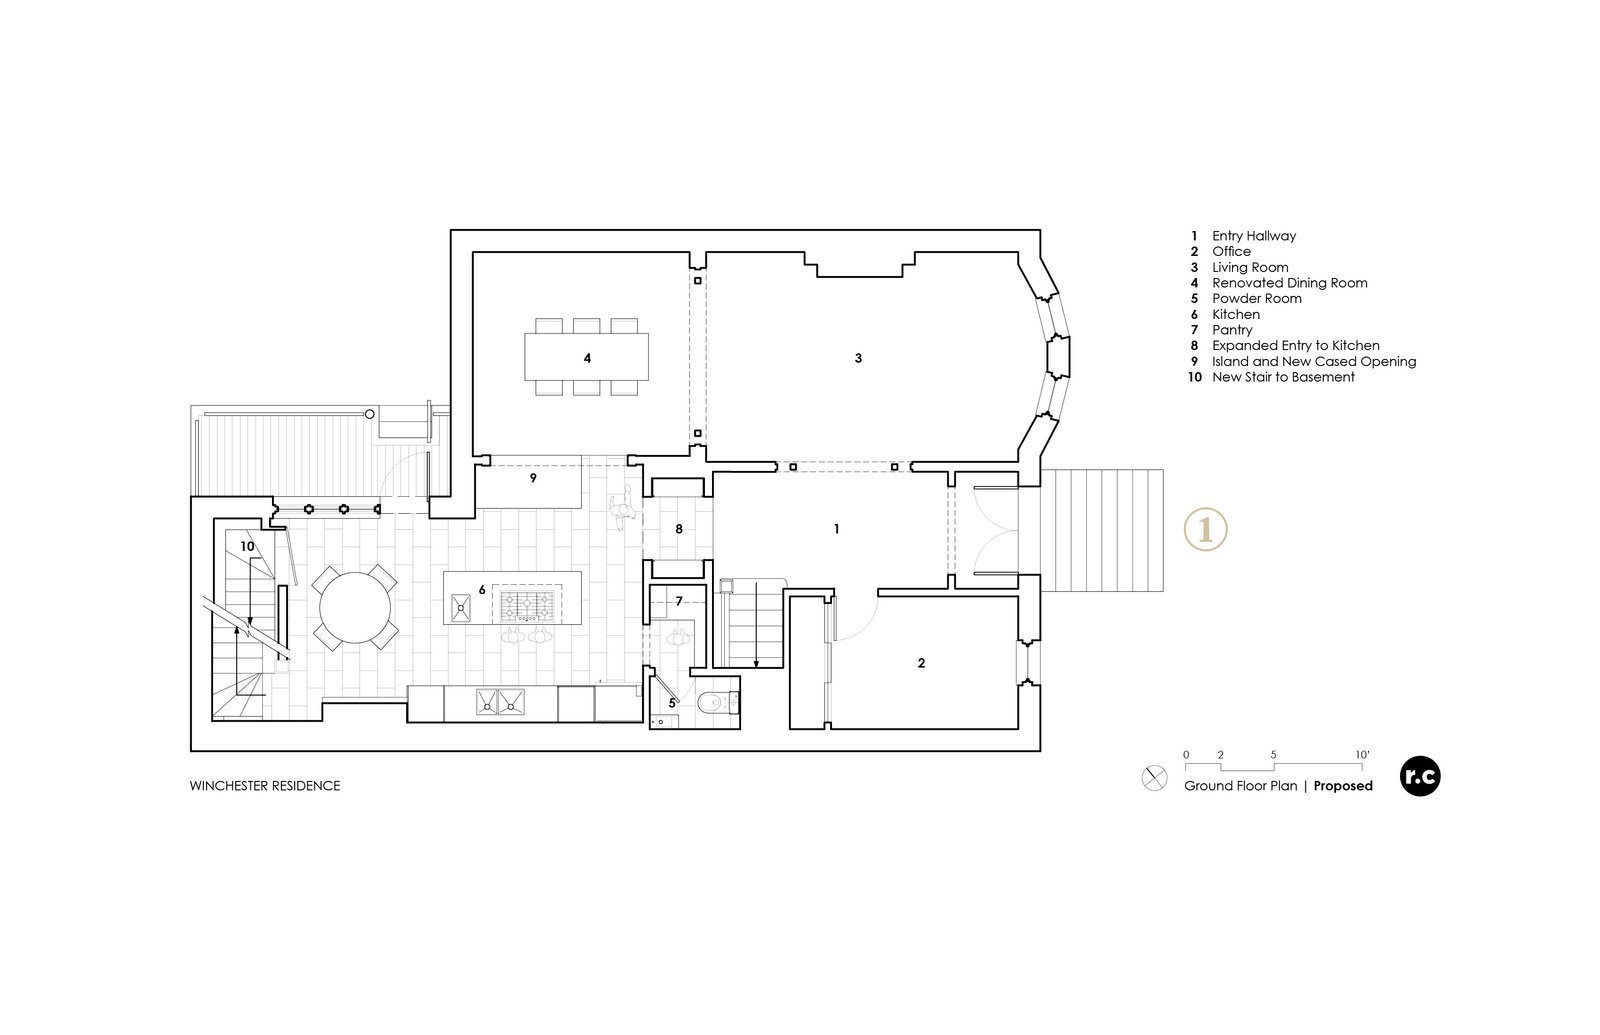 Plan - After renovations  Winchester Residence by RobitailleCurtis